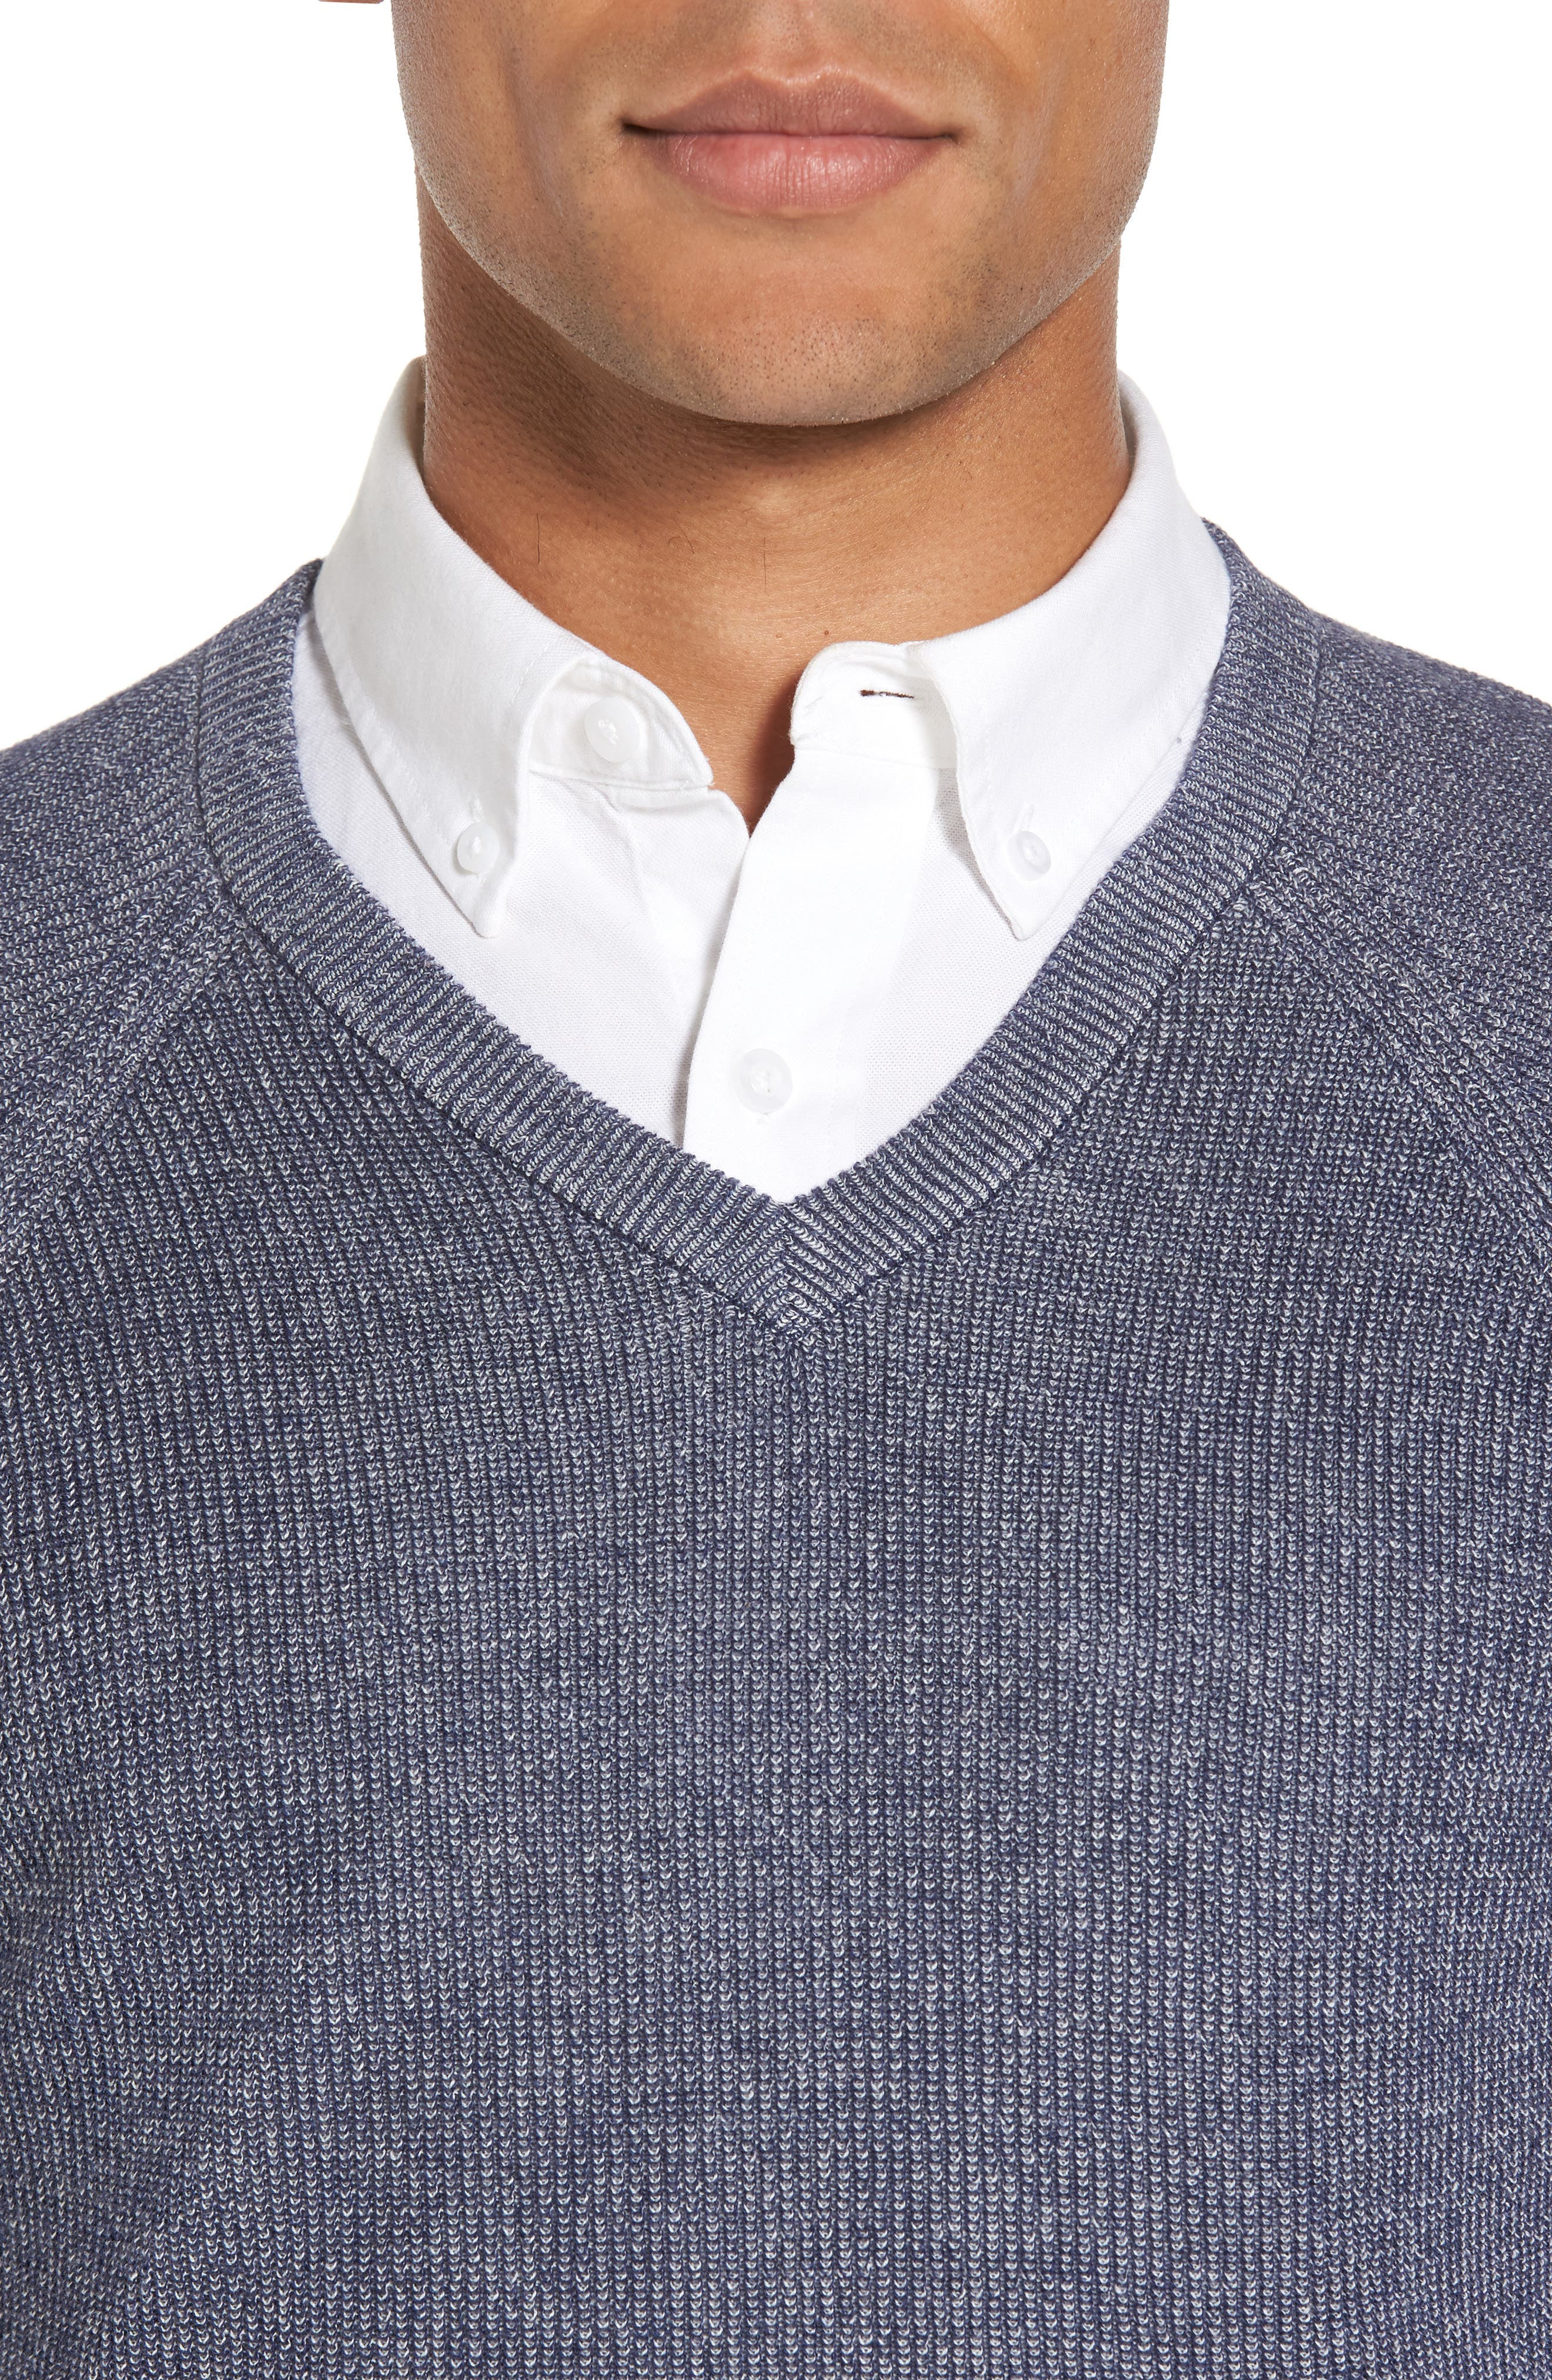 Supima<sup>®</sup> Cotton V-Neck Sweater,                             Alternate thumbnail 4, color,                             Navy Armada Marl